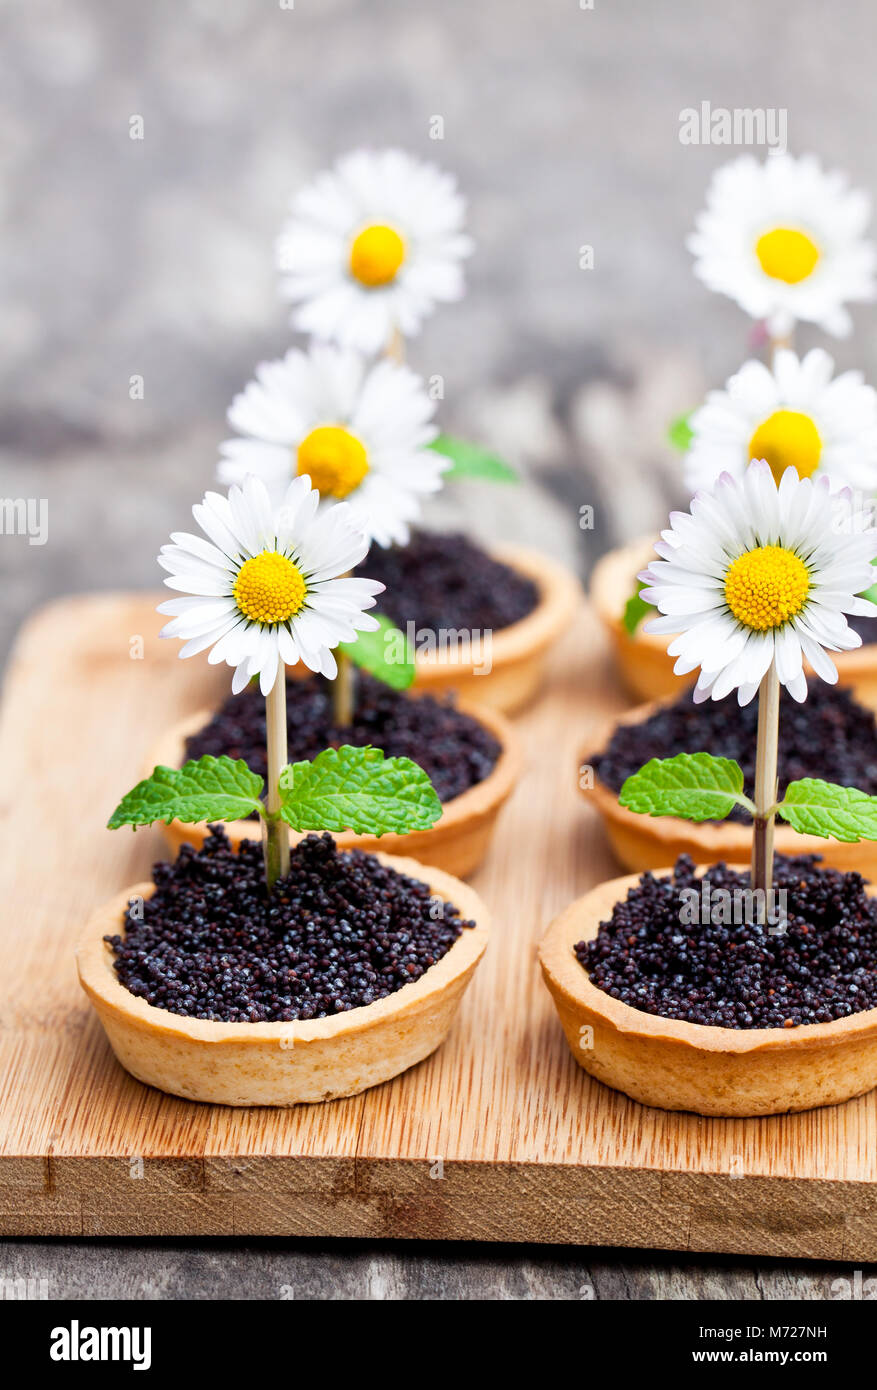 Homemade  chocolate caramel tartlets with poppy seeds and sugar. Creative garnish with real daisy and mint leaves. - Stock Image